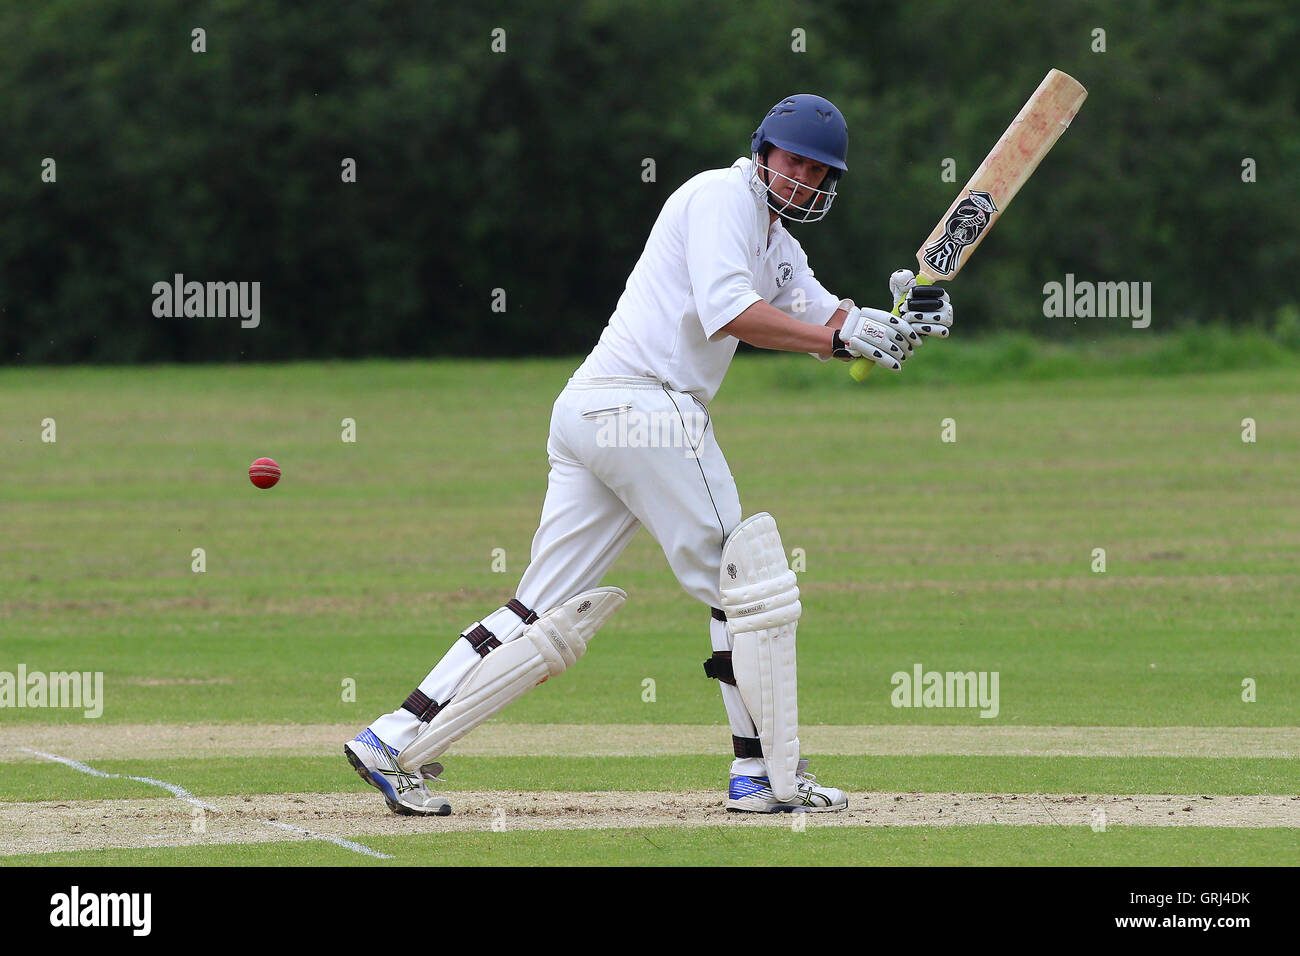 Jon Bayfield in batting action for Ardleigh Green during Ardleigh Green CC vs Westcliff-on-Sea CC, Shepherd Neame Stock Photo